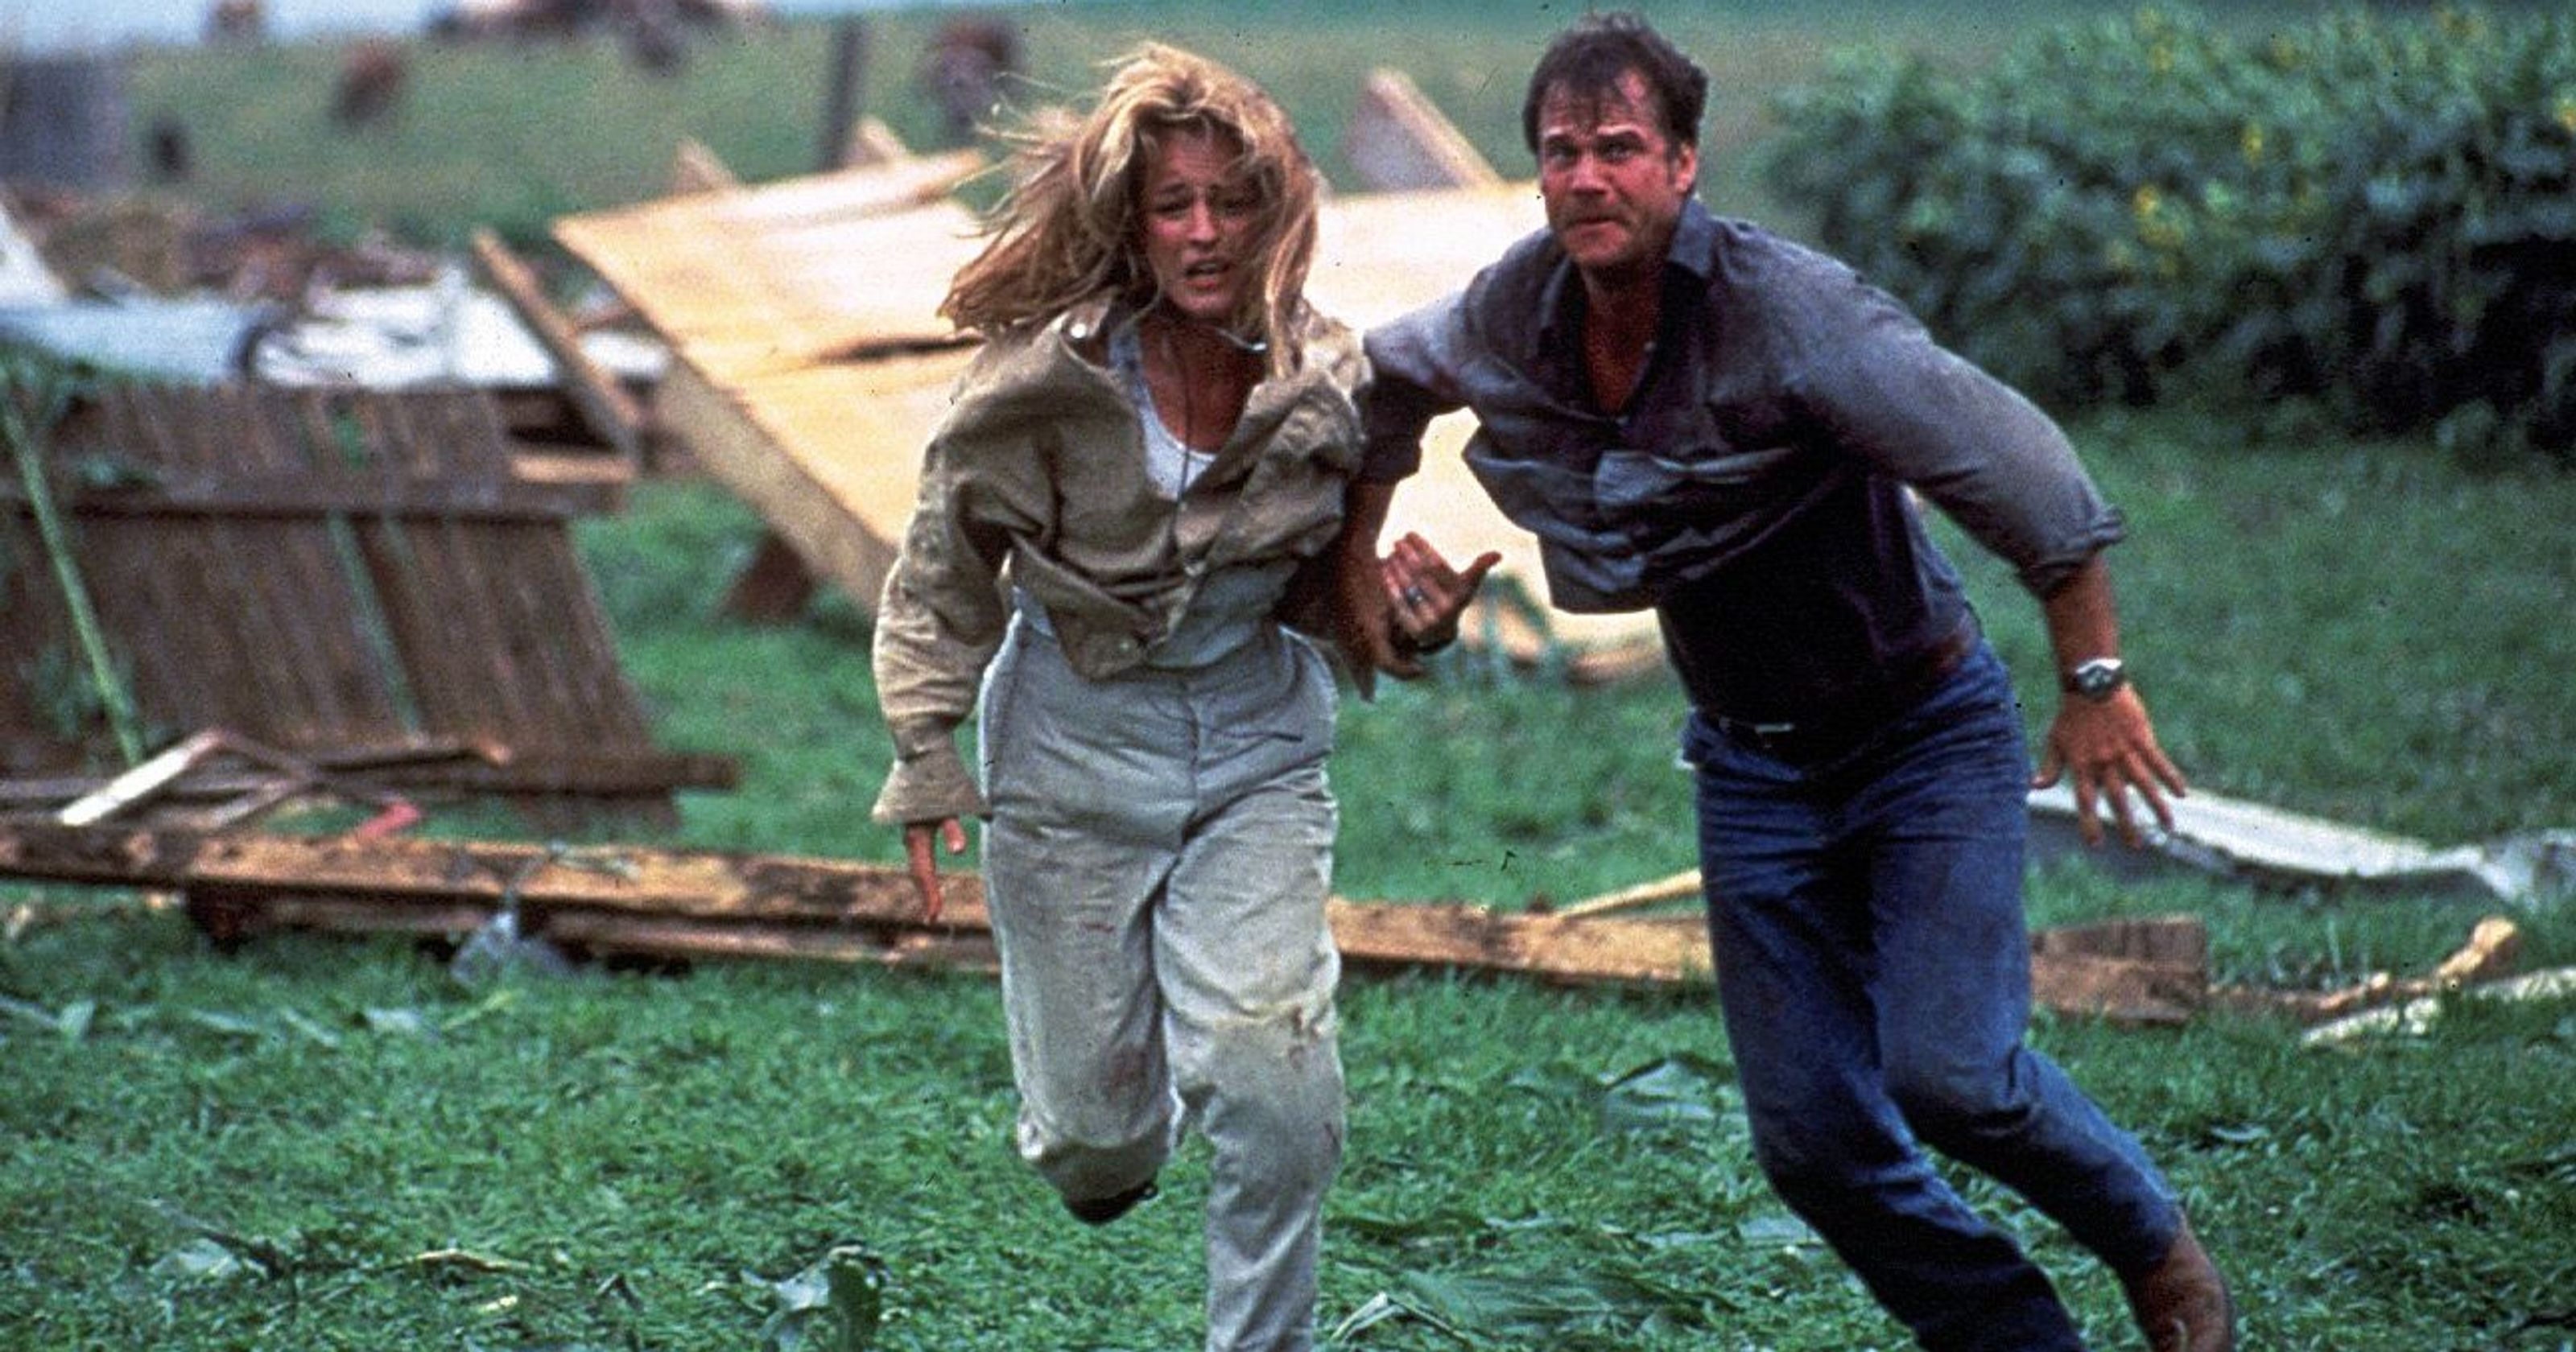 Helen Hunt and Bill Paxton flee in Twister (1996)